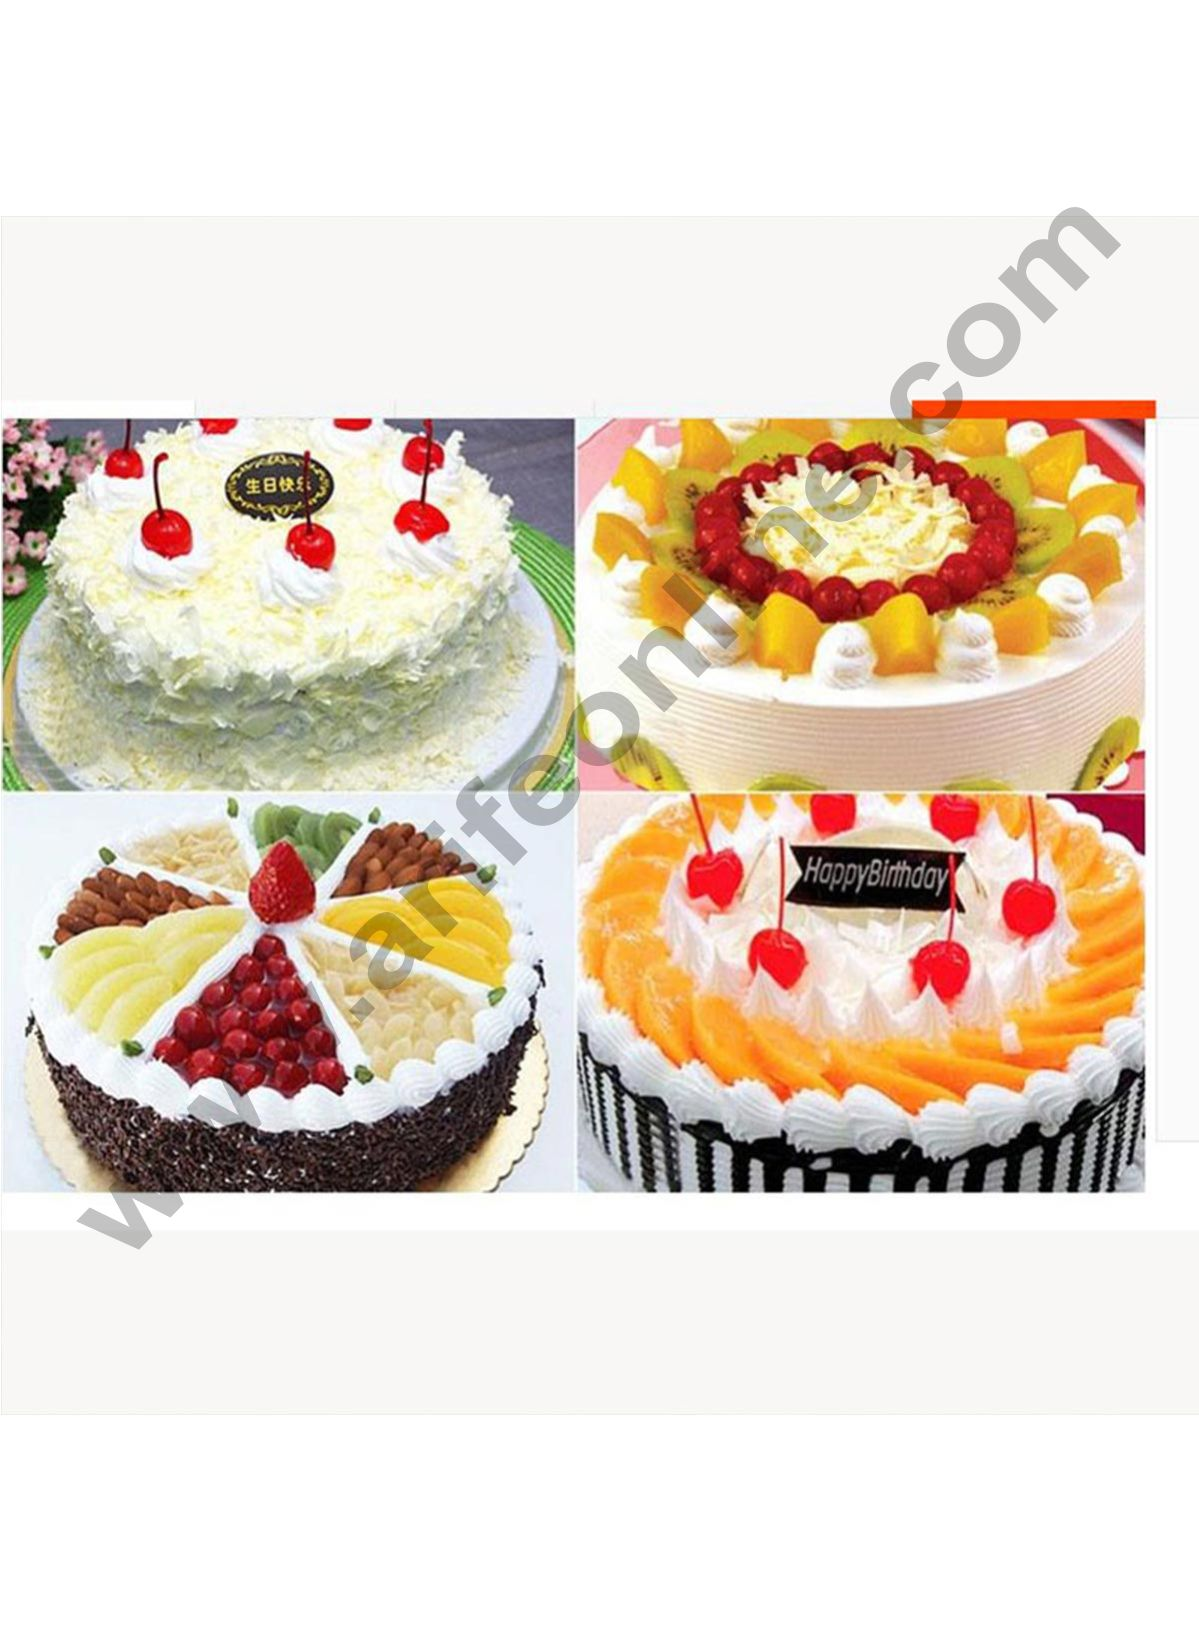 Cake Decor Gold Design Flower Print Glossy Corrugated Cake Board Base 9 Inch Diameter for Half and 1Kg Cakes- Pack of 10Pcs